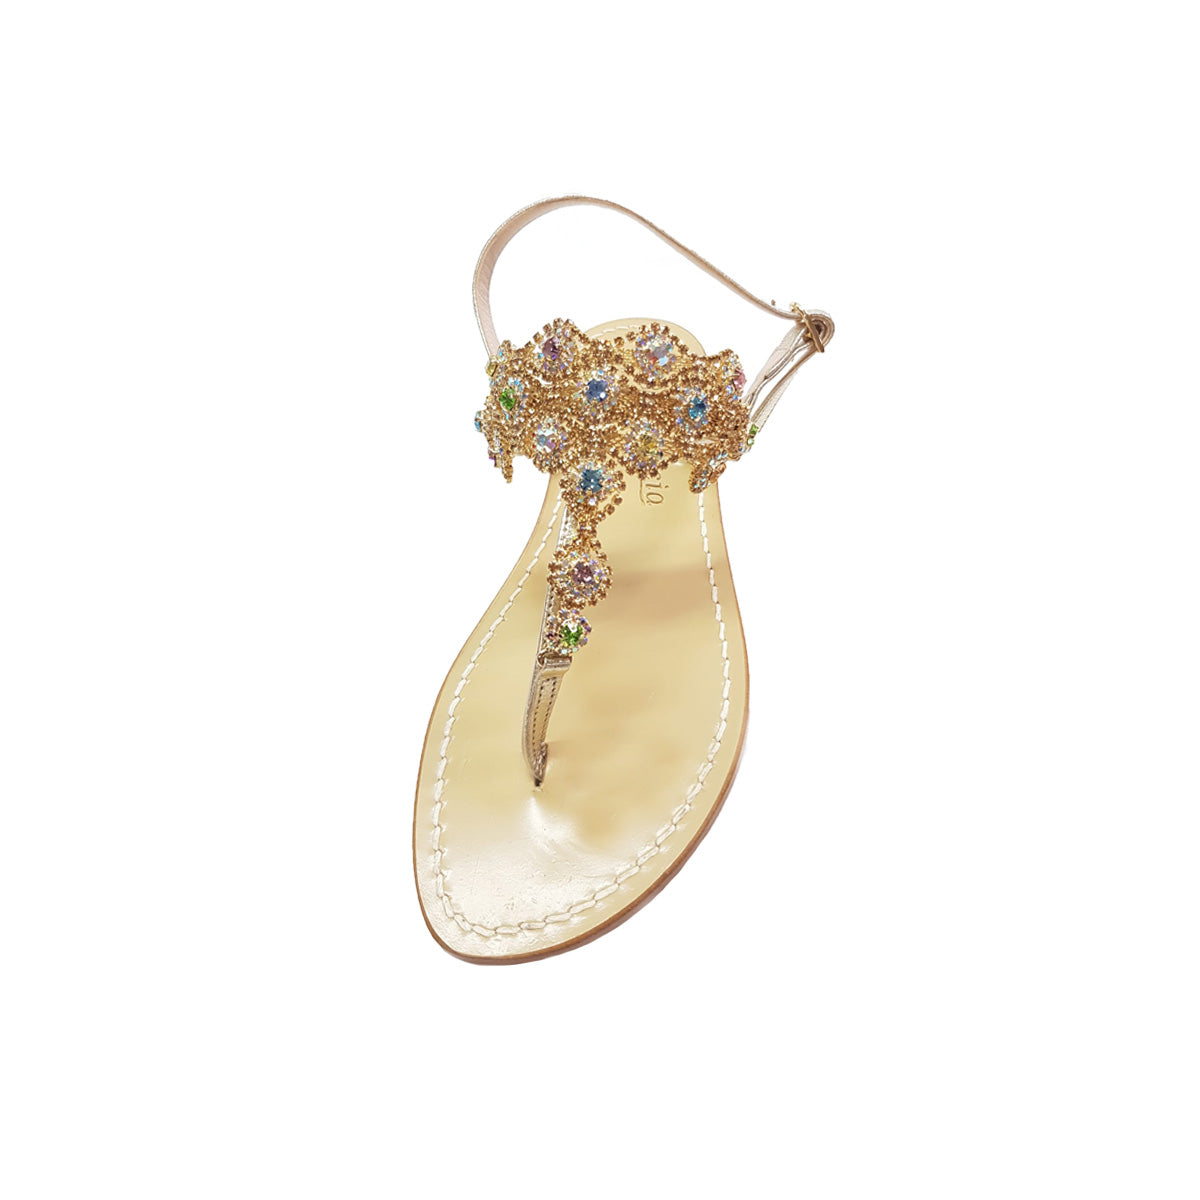 Positano sandal, with stones, gold